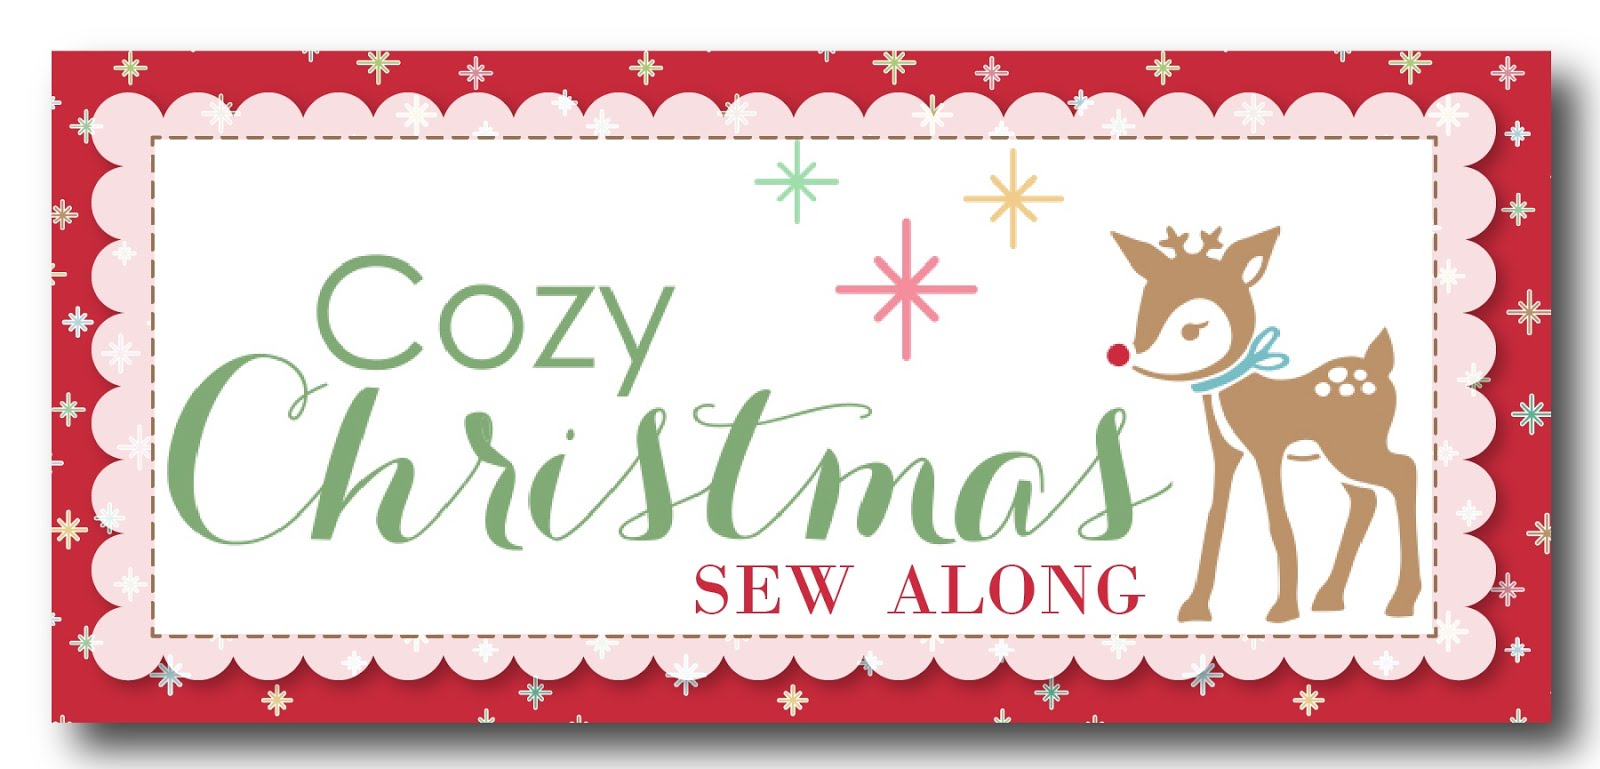 Cozy Christmas Sew Along!!!